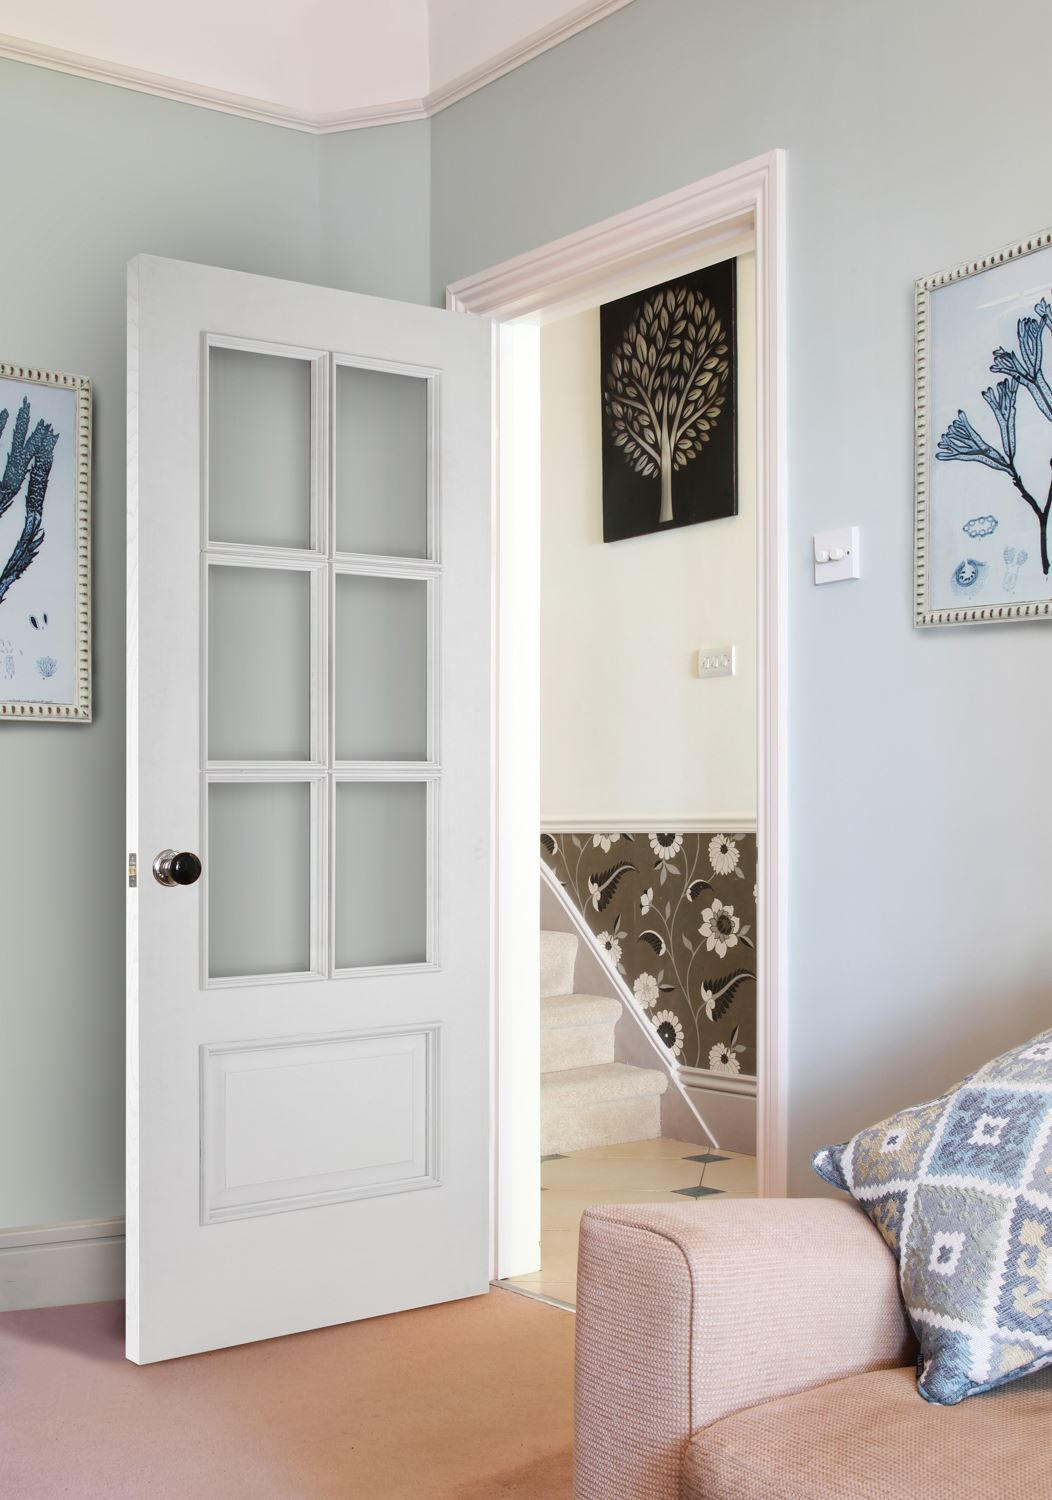 Iris 6 light white bespoke traditional internal doors find this pin and more on traditional internal doors by todddoors planetlyrics Images